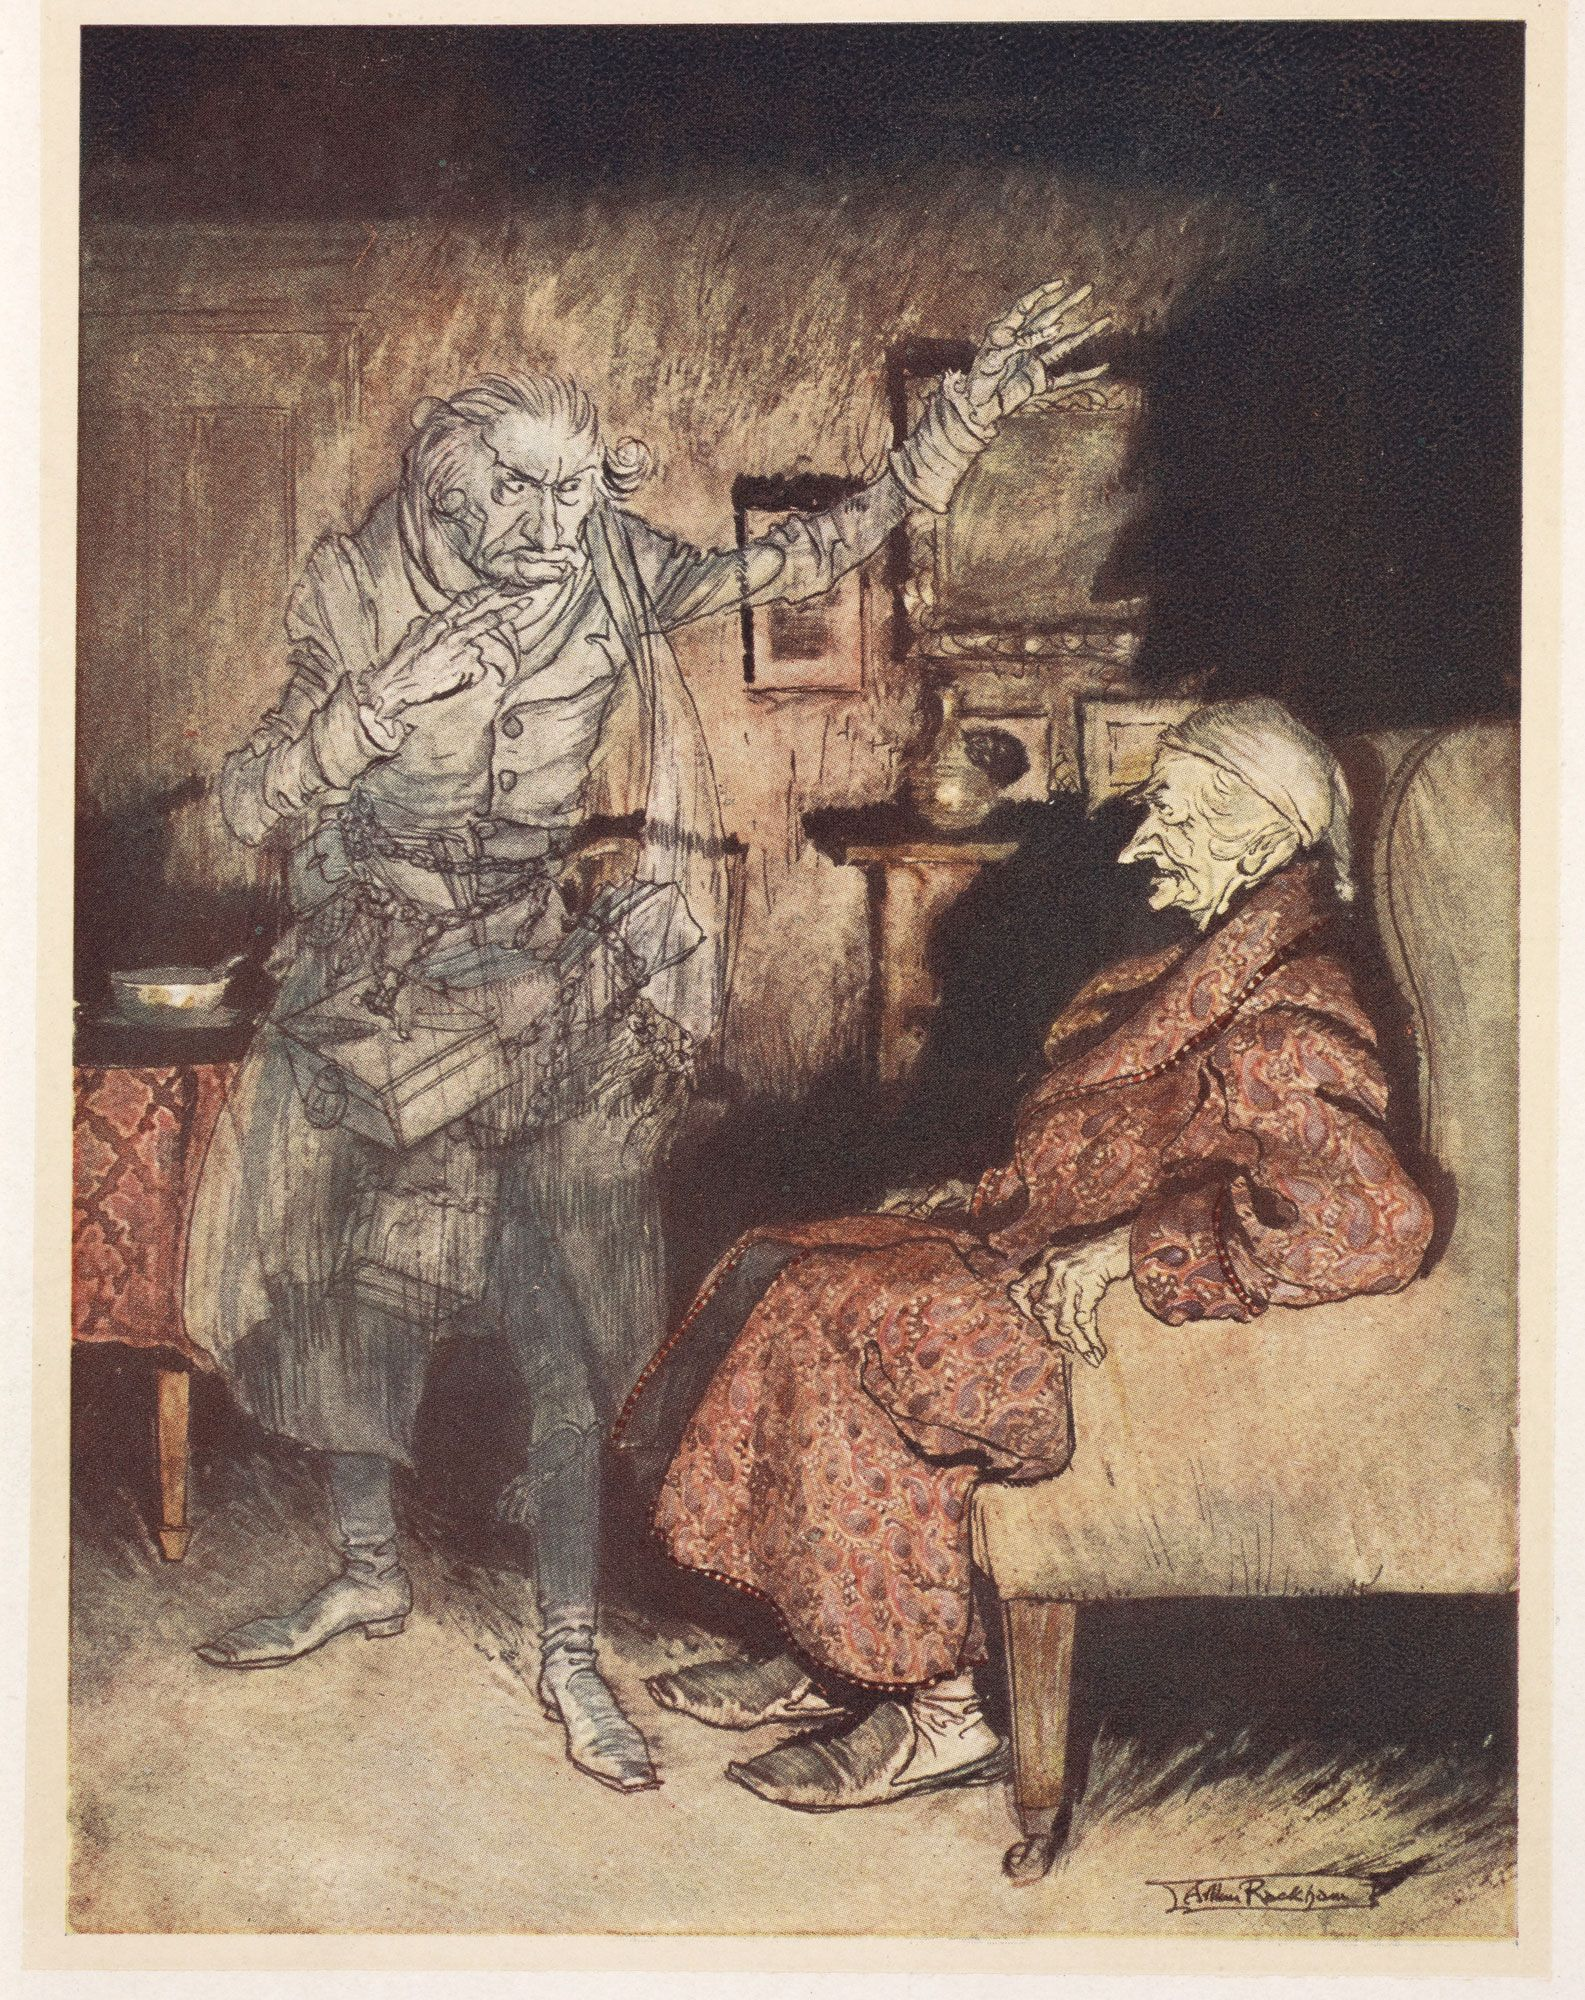 Αποτέλεσμα εικόνας για christmas carol illustrated by arthur rackham